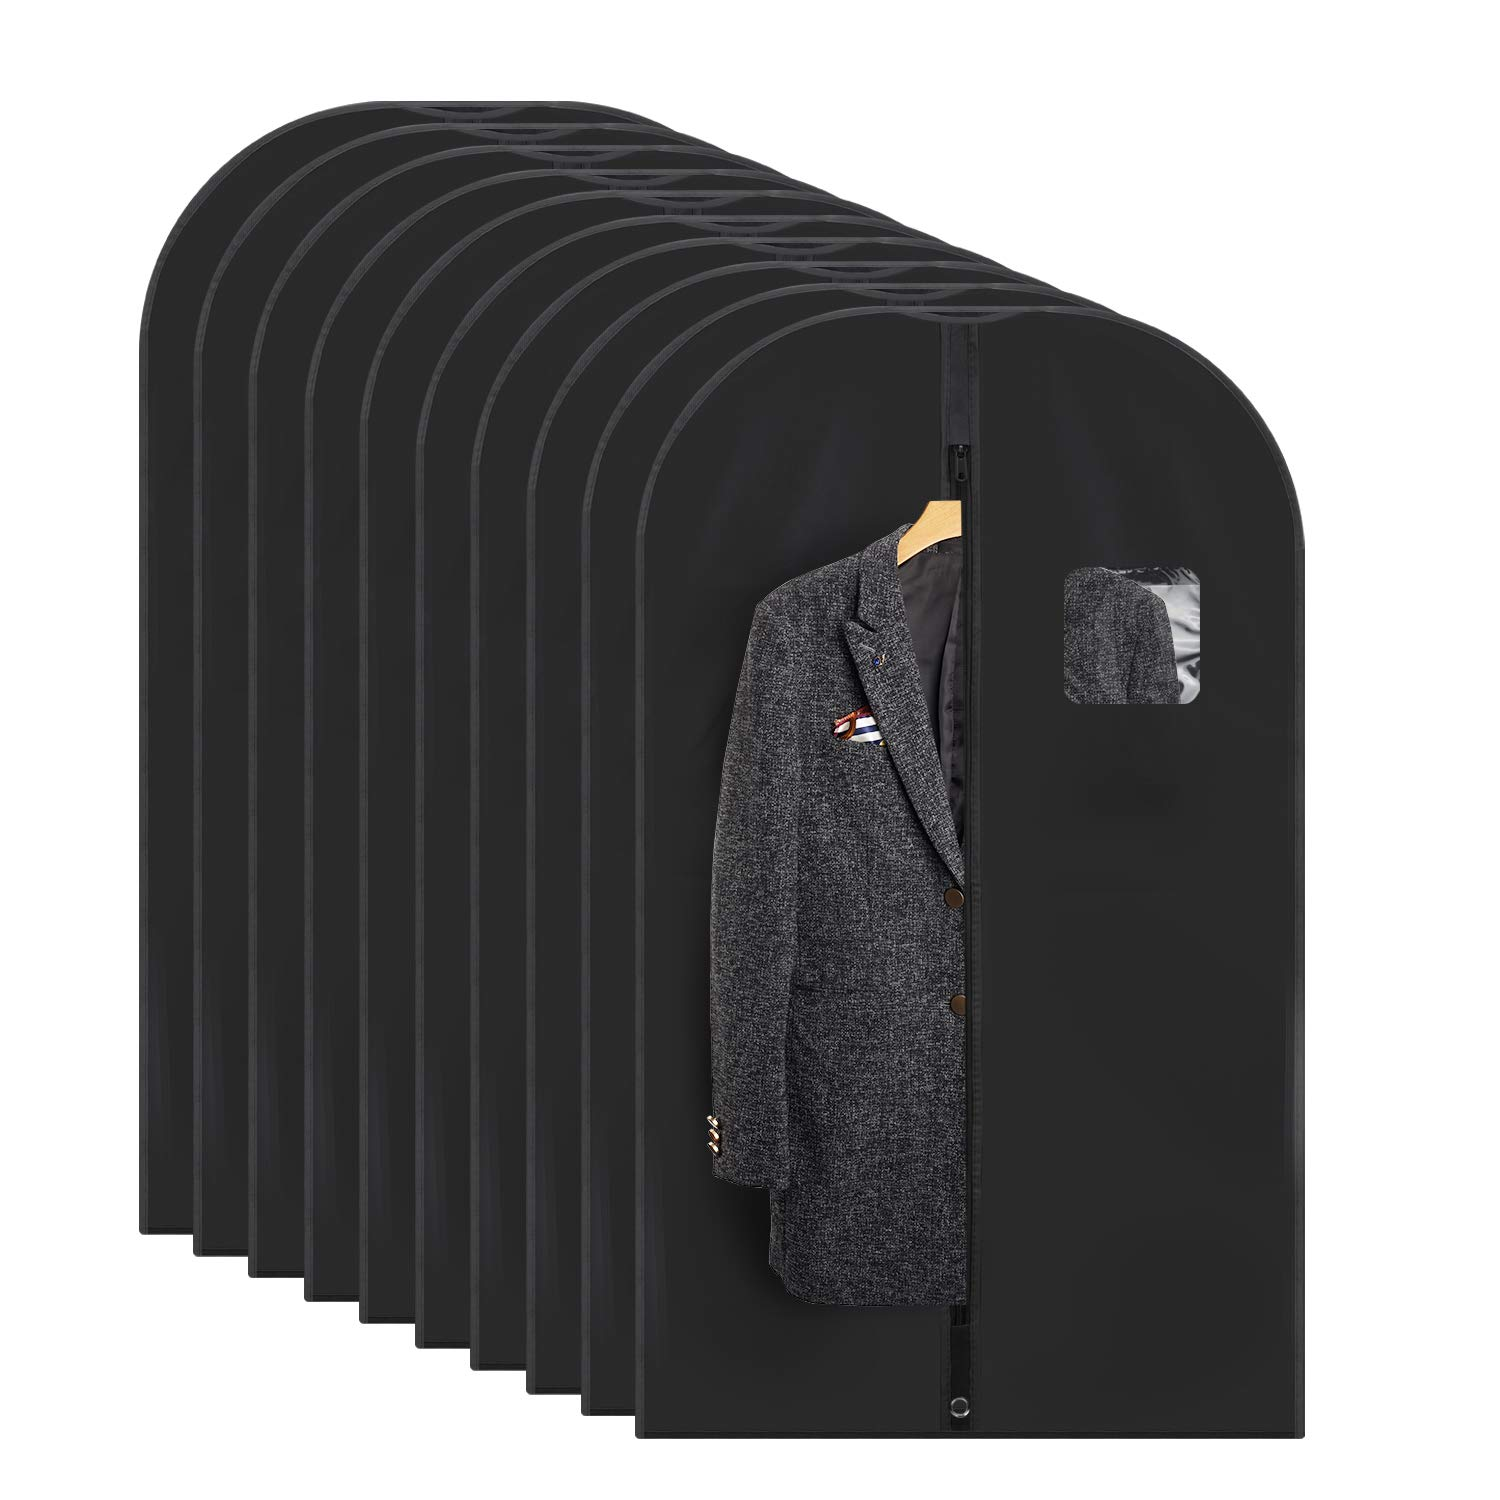 Titan Mall Costume Garment Bag for Travel 42 inch Breathable Garment Cover for Suit and Dress Pack of 10